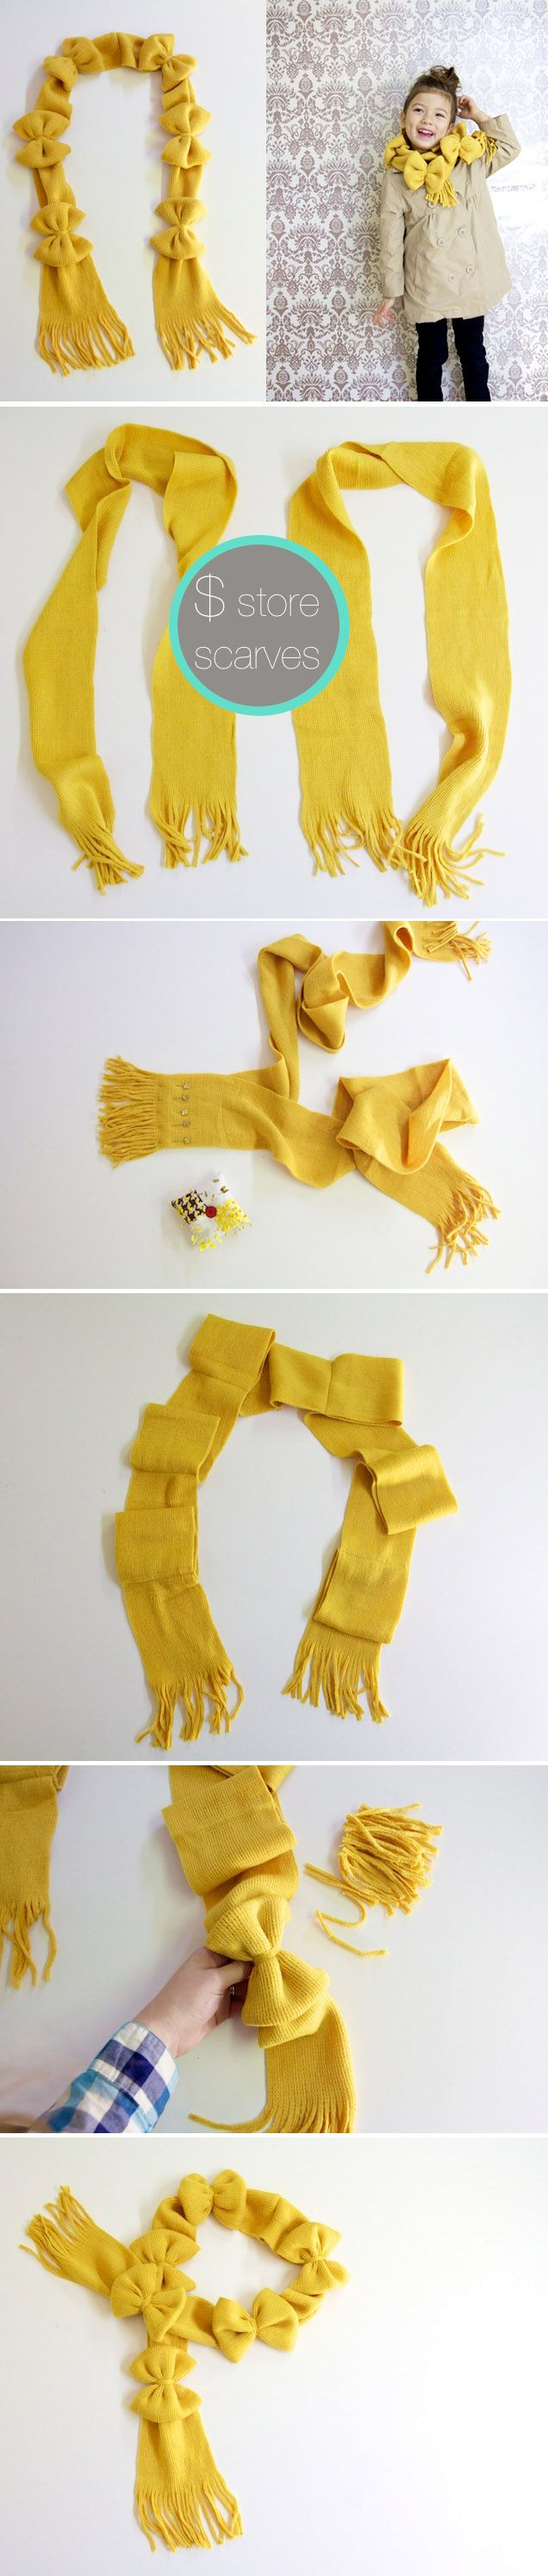 DIY Bows Scarf Tutorial_hgdbnmkf